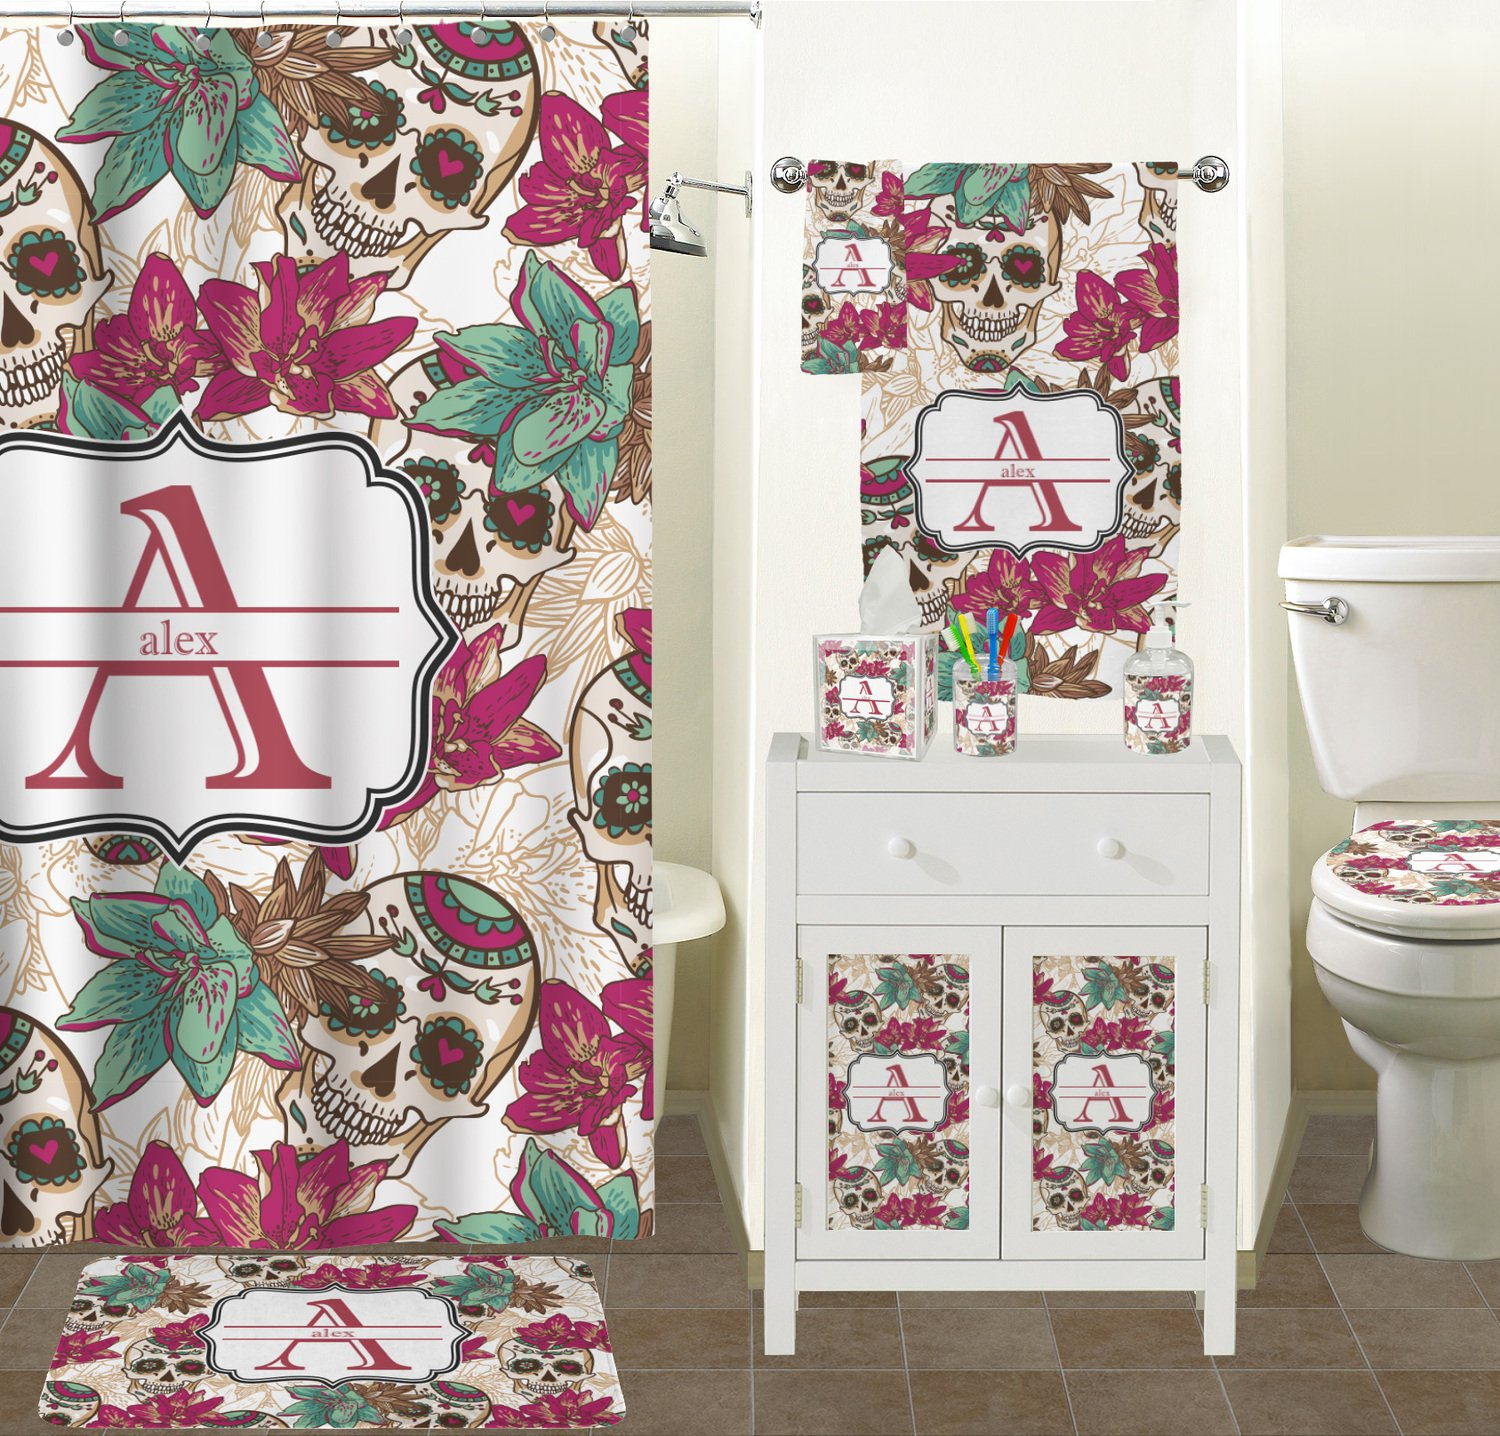 Sugar Skull Bathroom Decor Vintage Grunge Halloween Bathroom Accessories Set Personalized